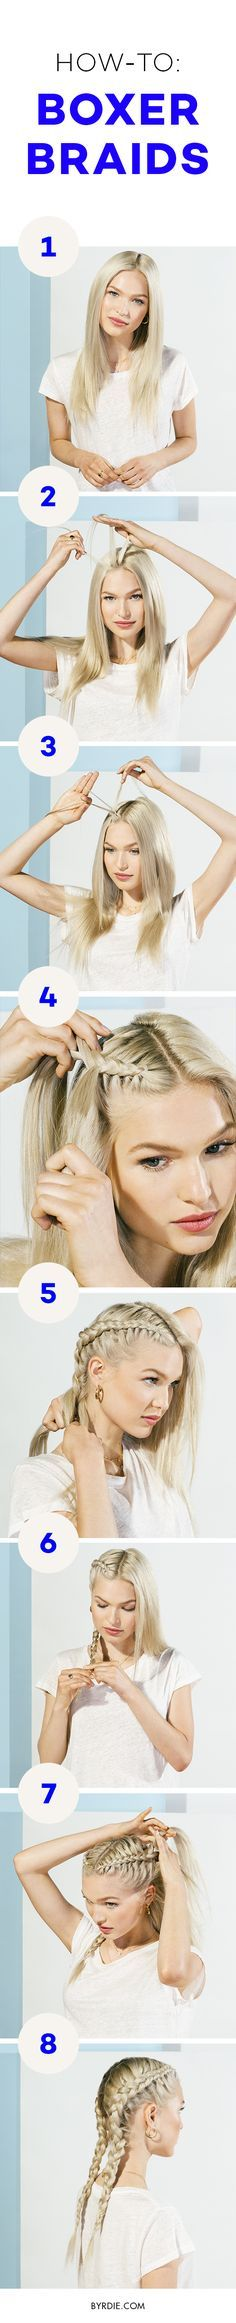 How to do a boxer braid